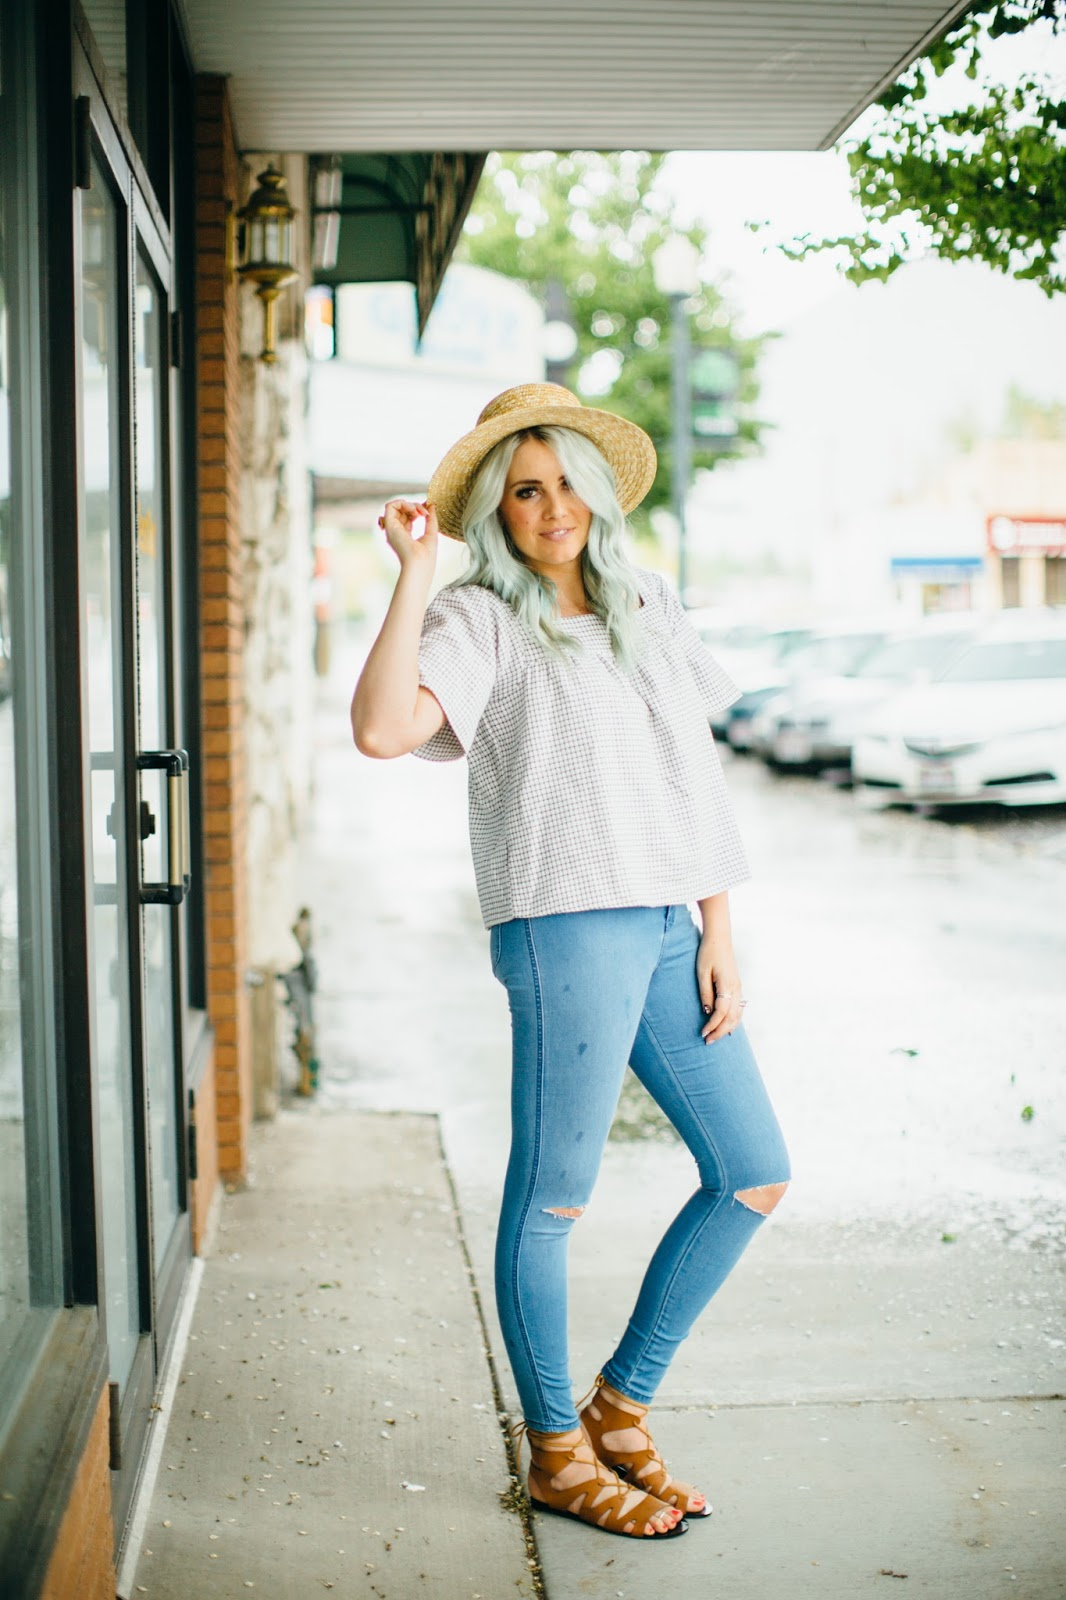 Spring Outfit, Lace Up Sandals, Mint Hair